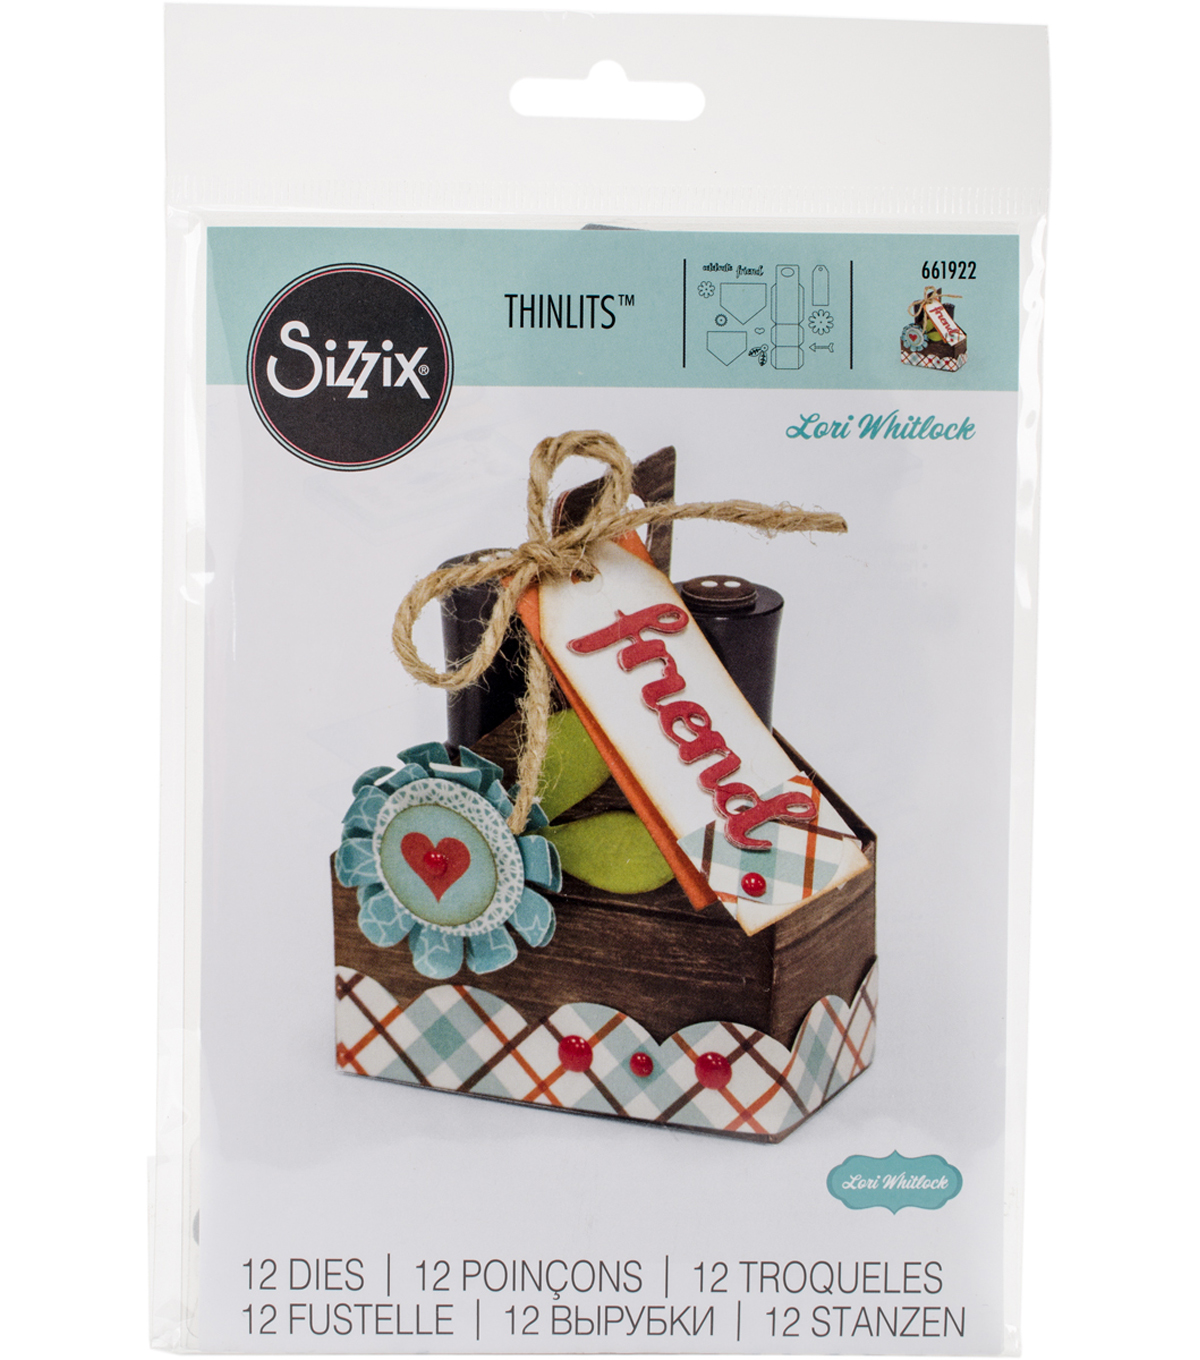 Sizzix Thinlits Die By Lori Whitlock-Double Tote